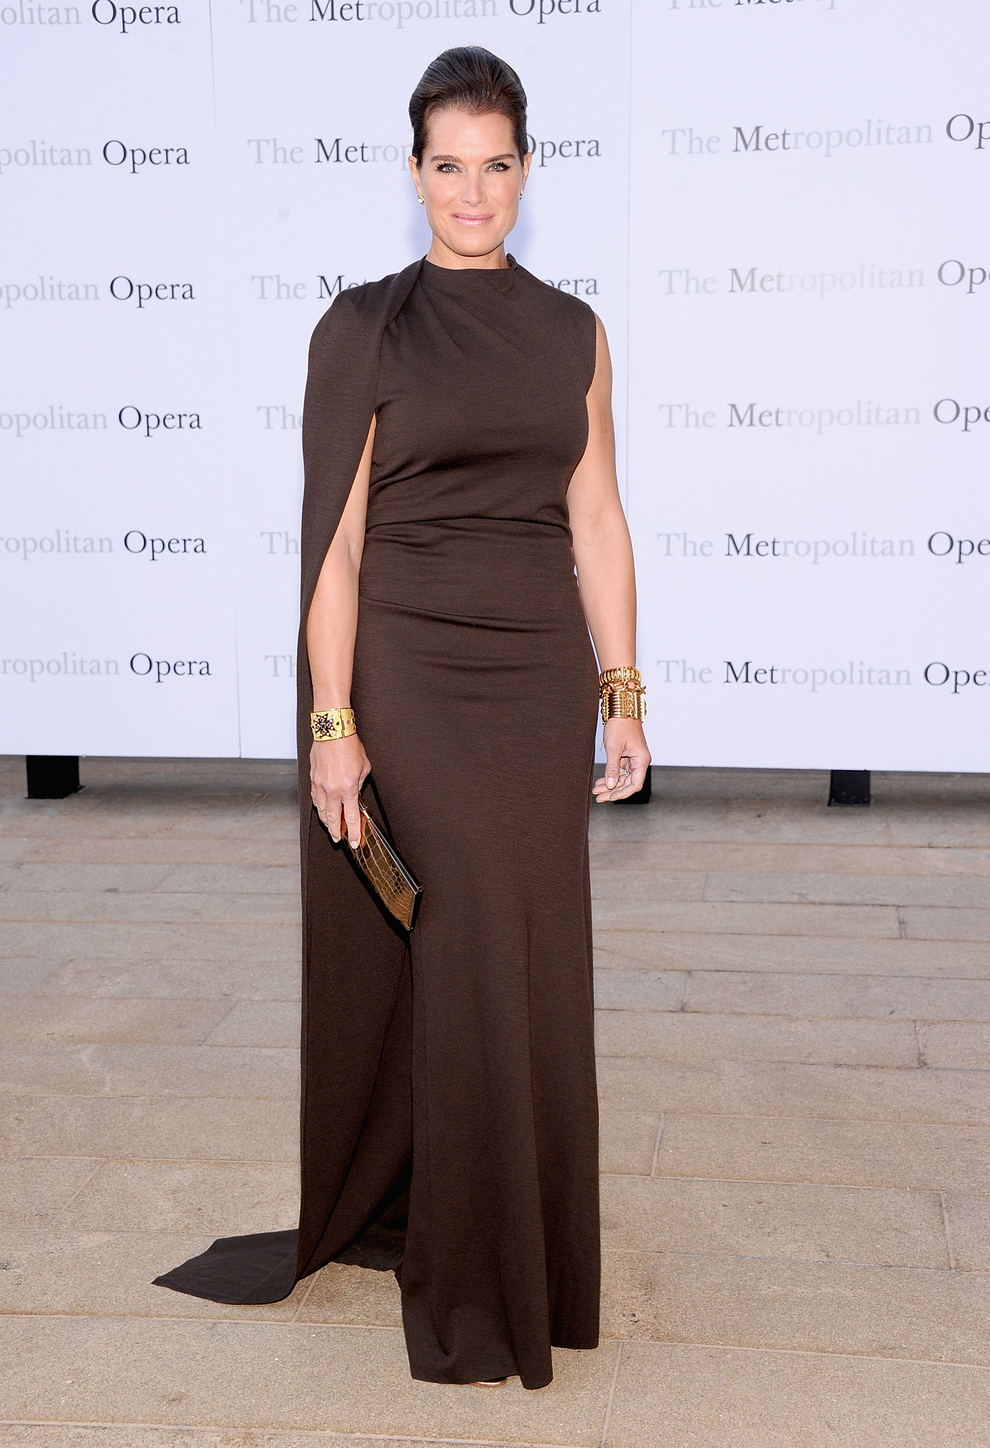 Brooke Shields At The Metropolitan Opera House In New York City